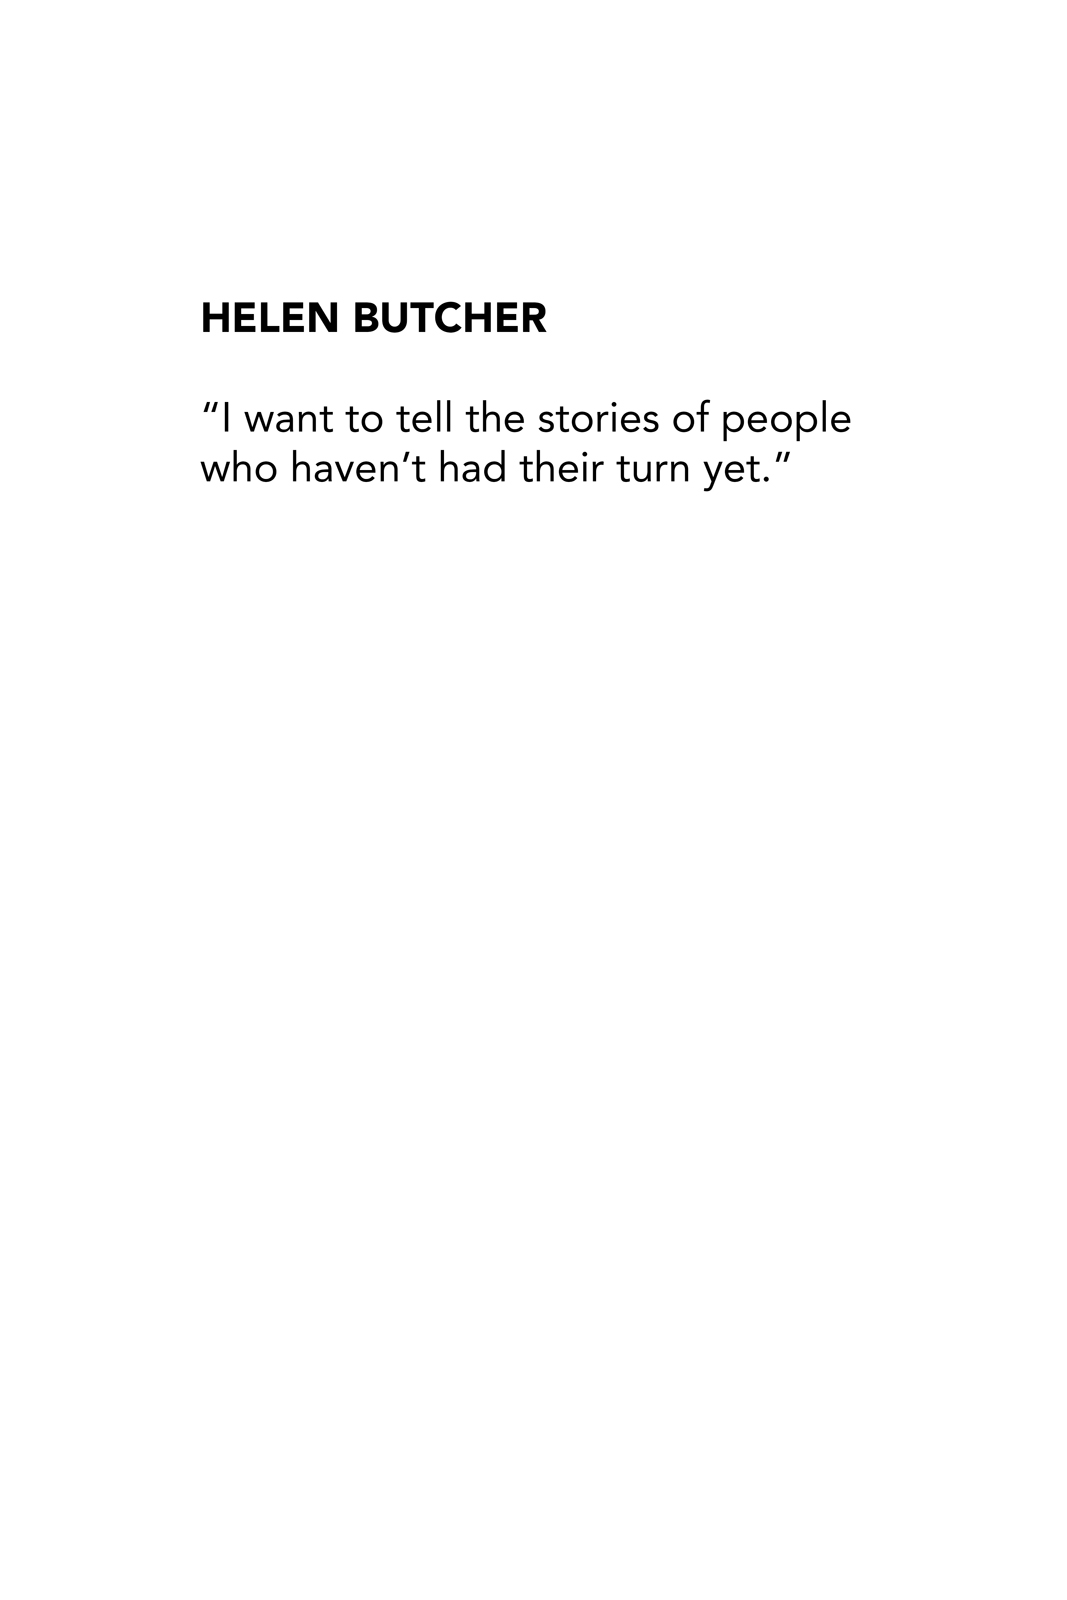 Helen Butcher Quote.jpg